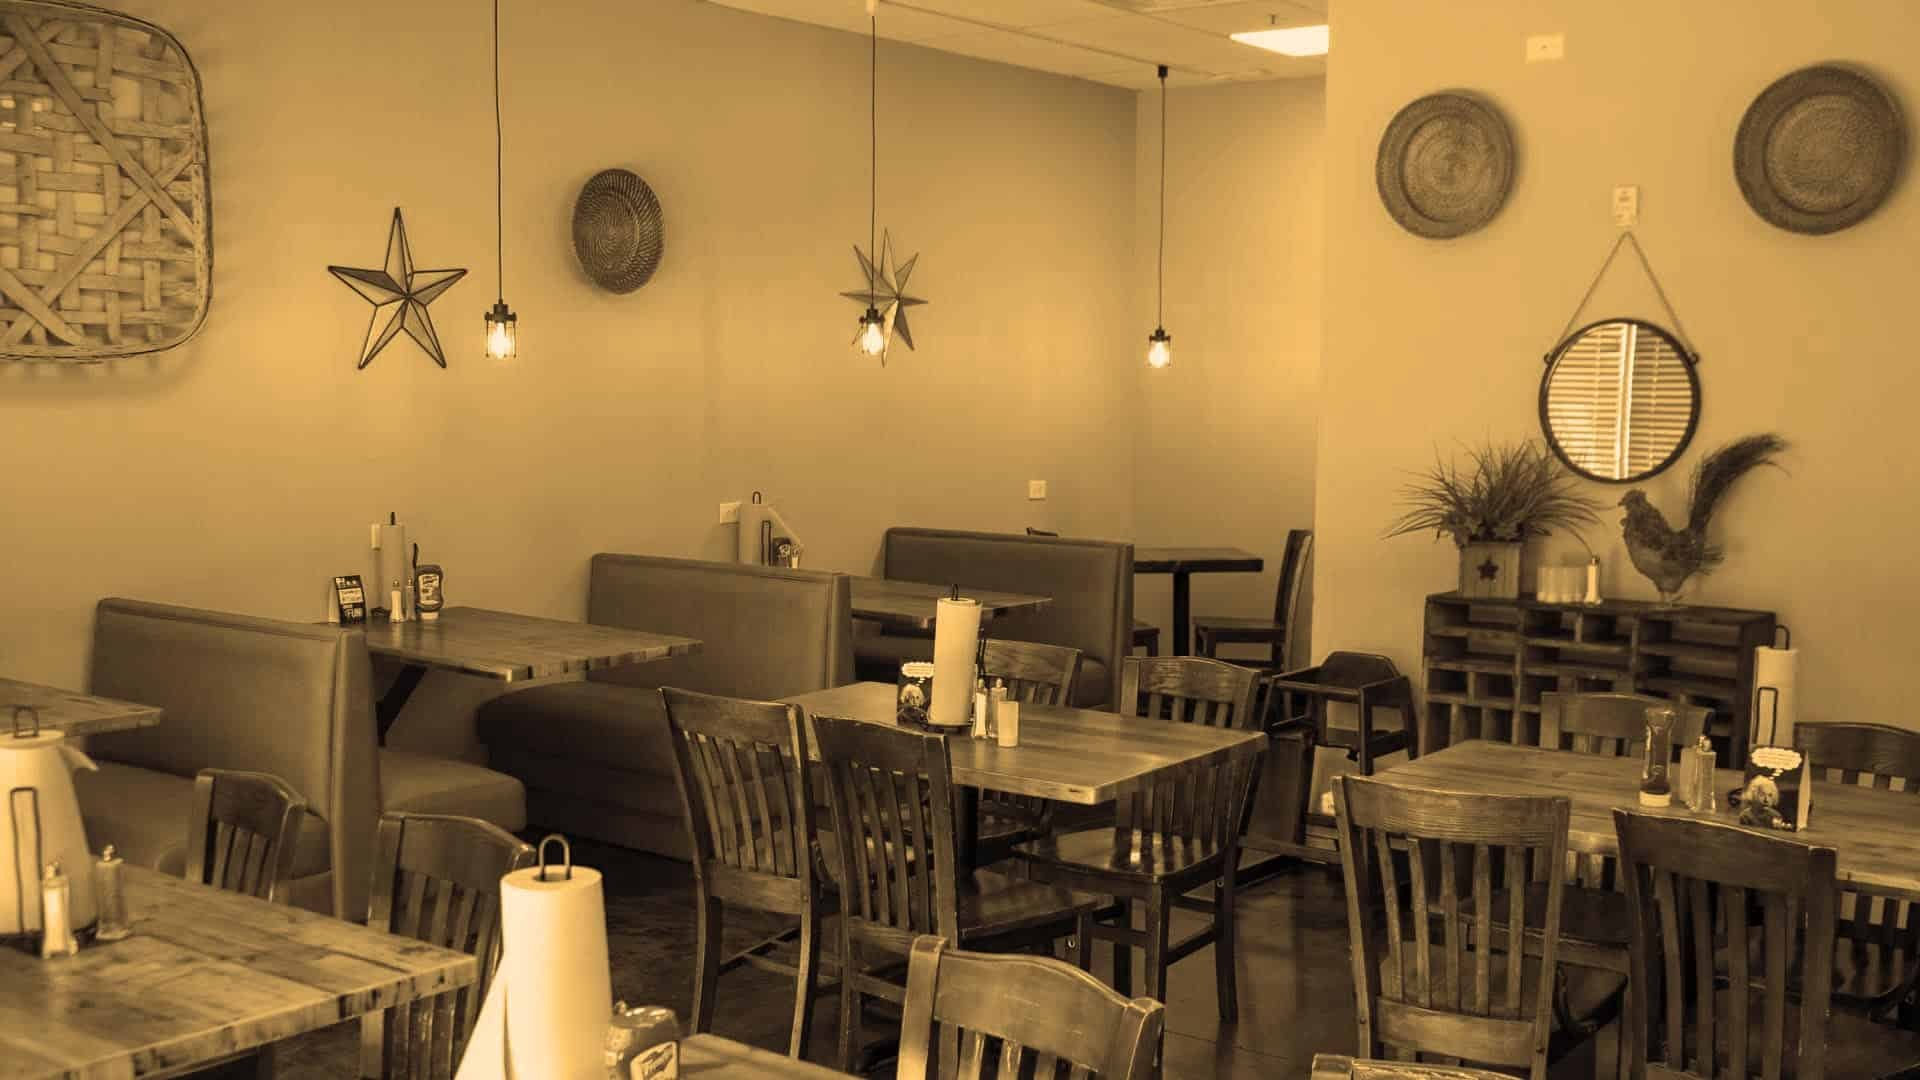 TN Jacks dining room image